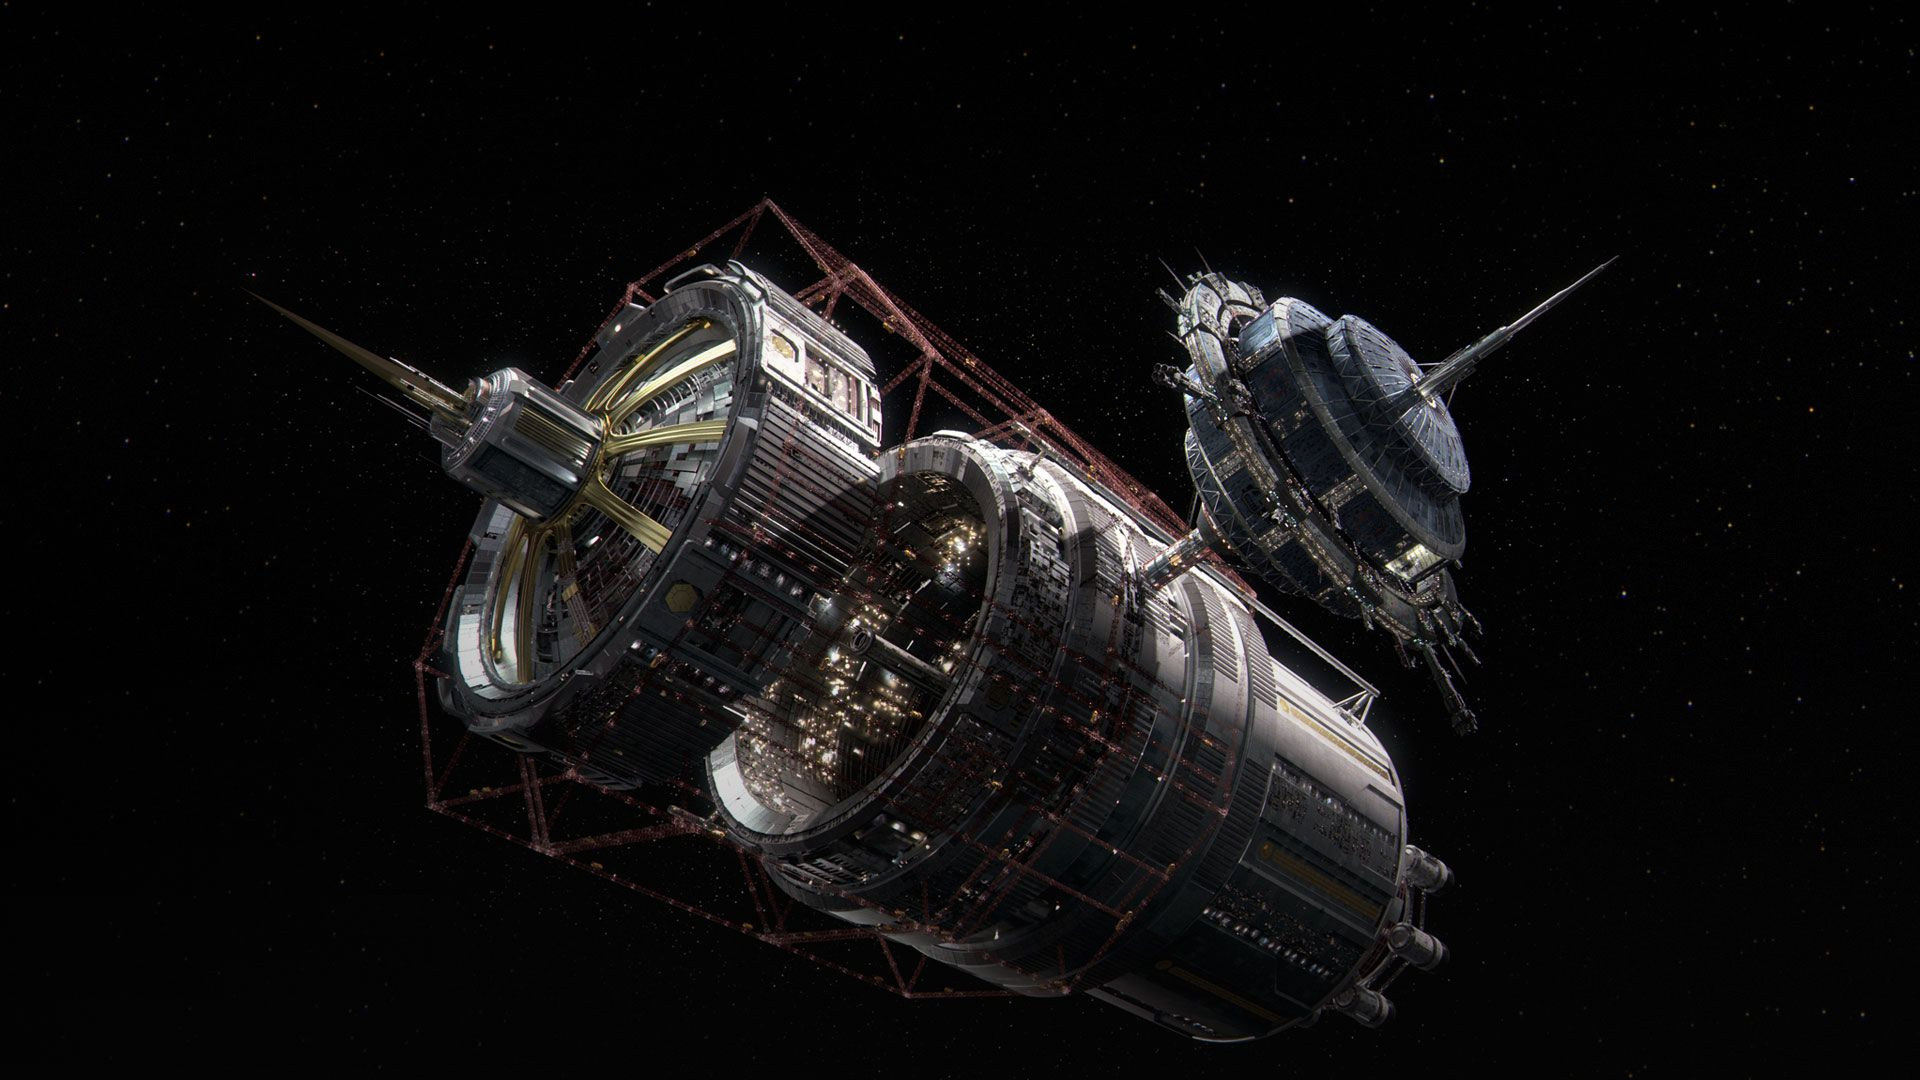 Station Spaceship Shape